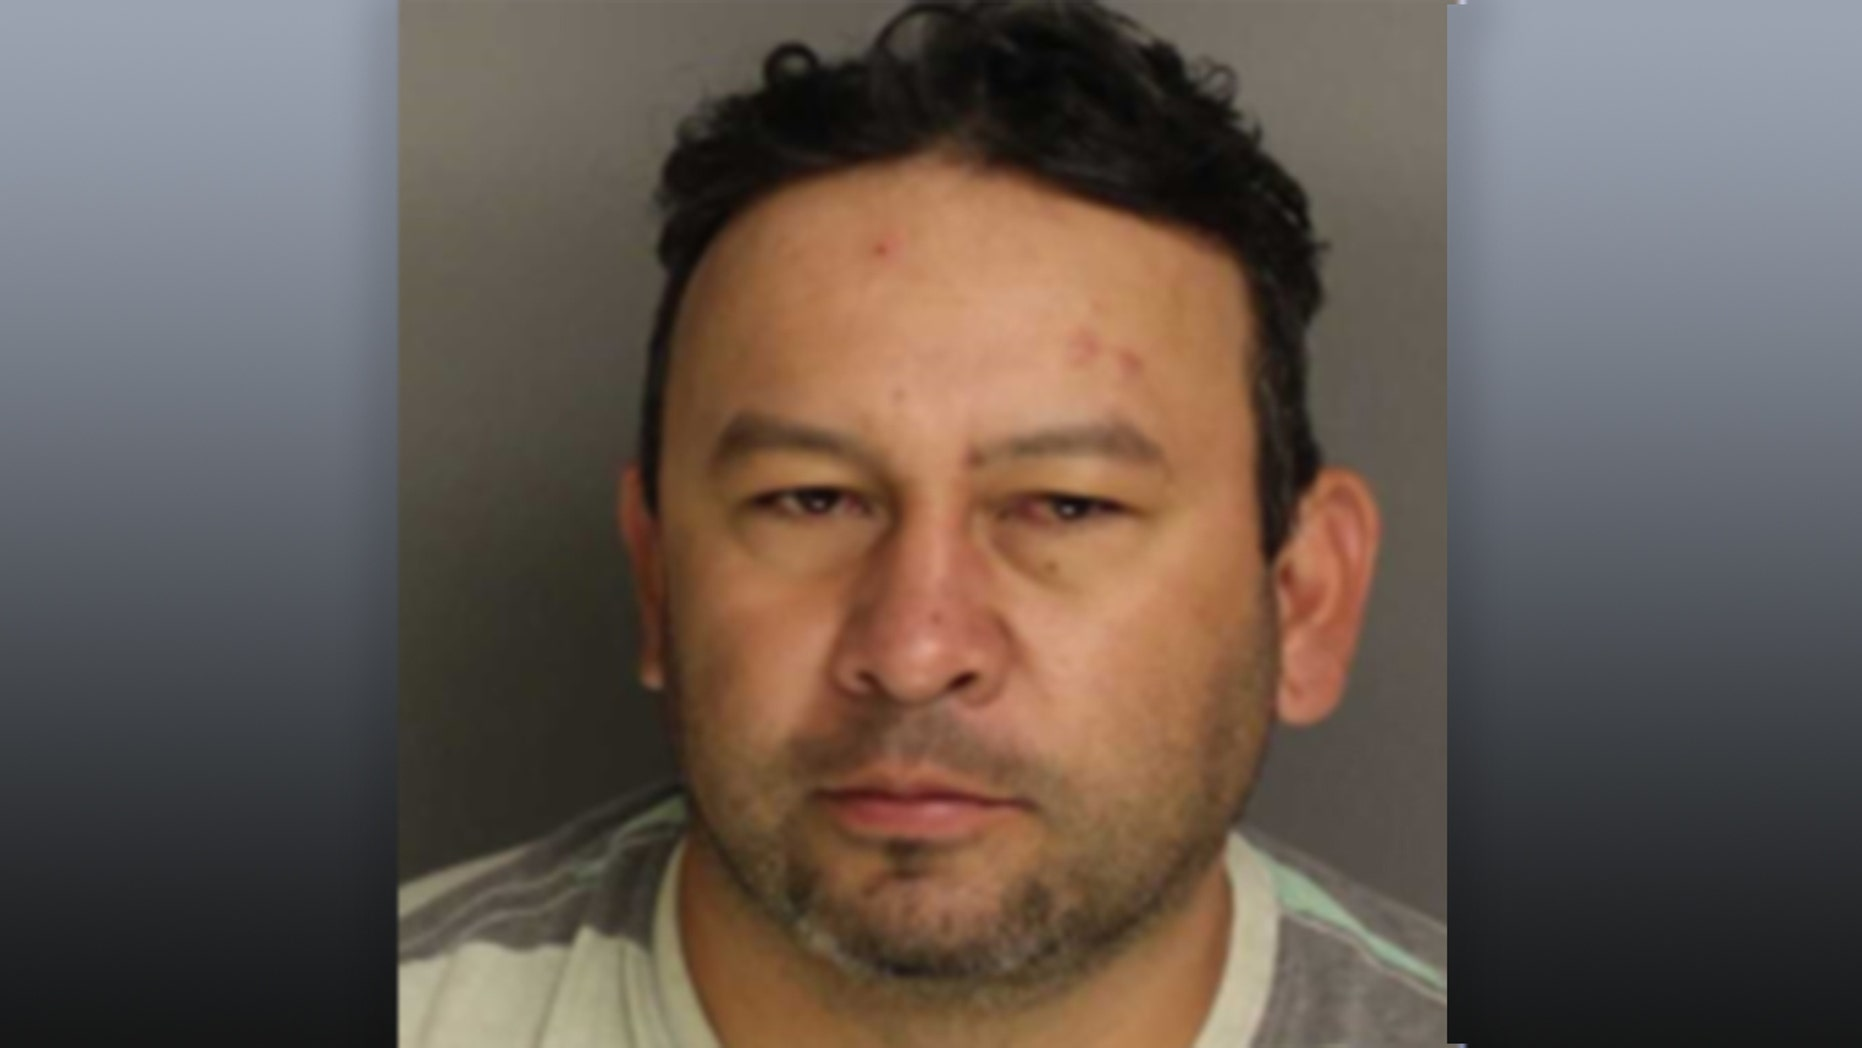 Humberto Guzman-Garcia, 35, was charged wih the abduction and sexual assault of a 4-year-old girl Sunday in Avondale, Penn.